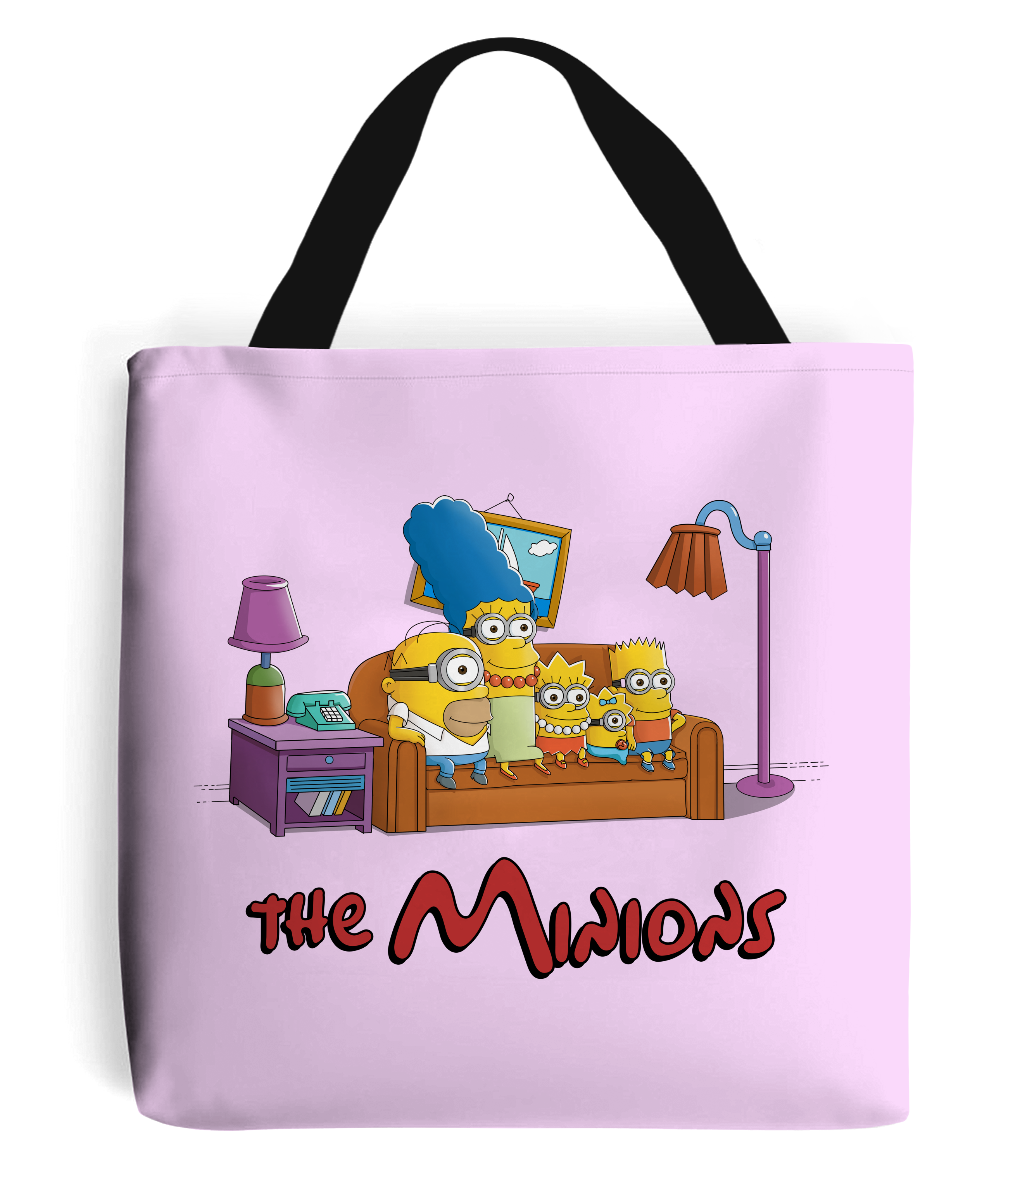 simpsons minions tote bag pink